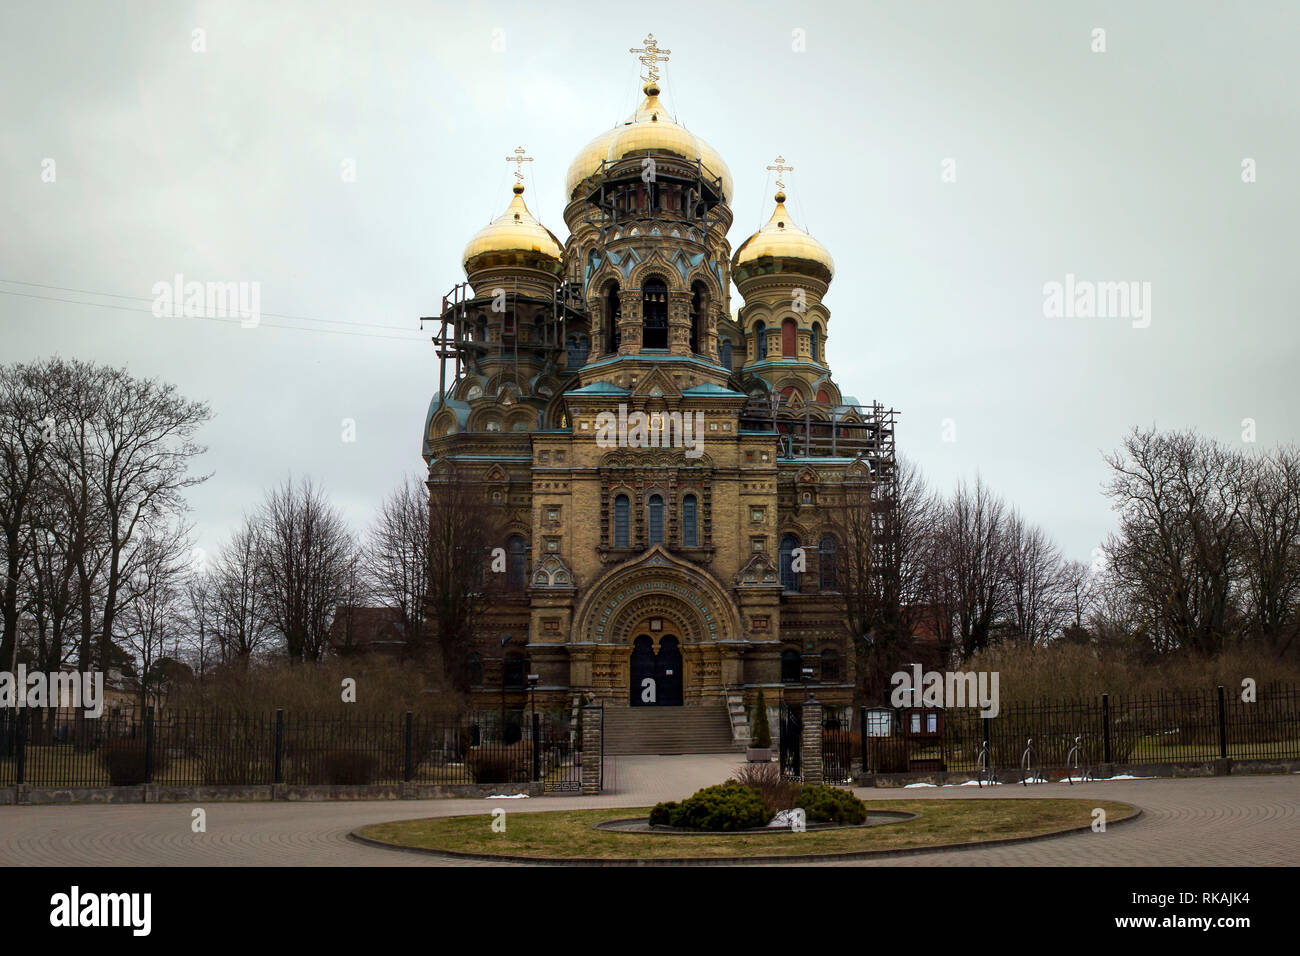 LIEPAJA, LATVIA - March, 2017: The gold domed St. Nicholas Orthodox Sea Cathedral in Liepaja's Karosta district. - Stock Image